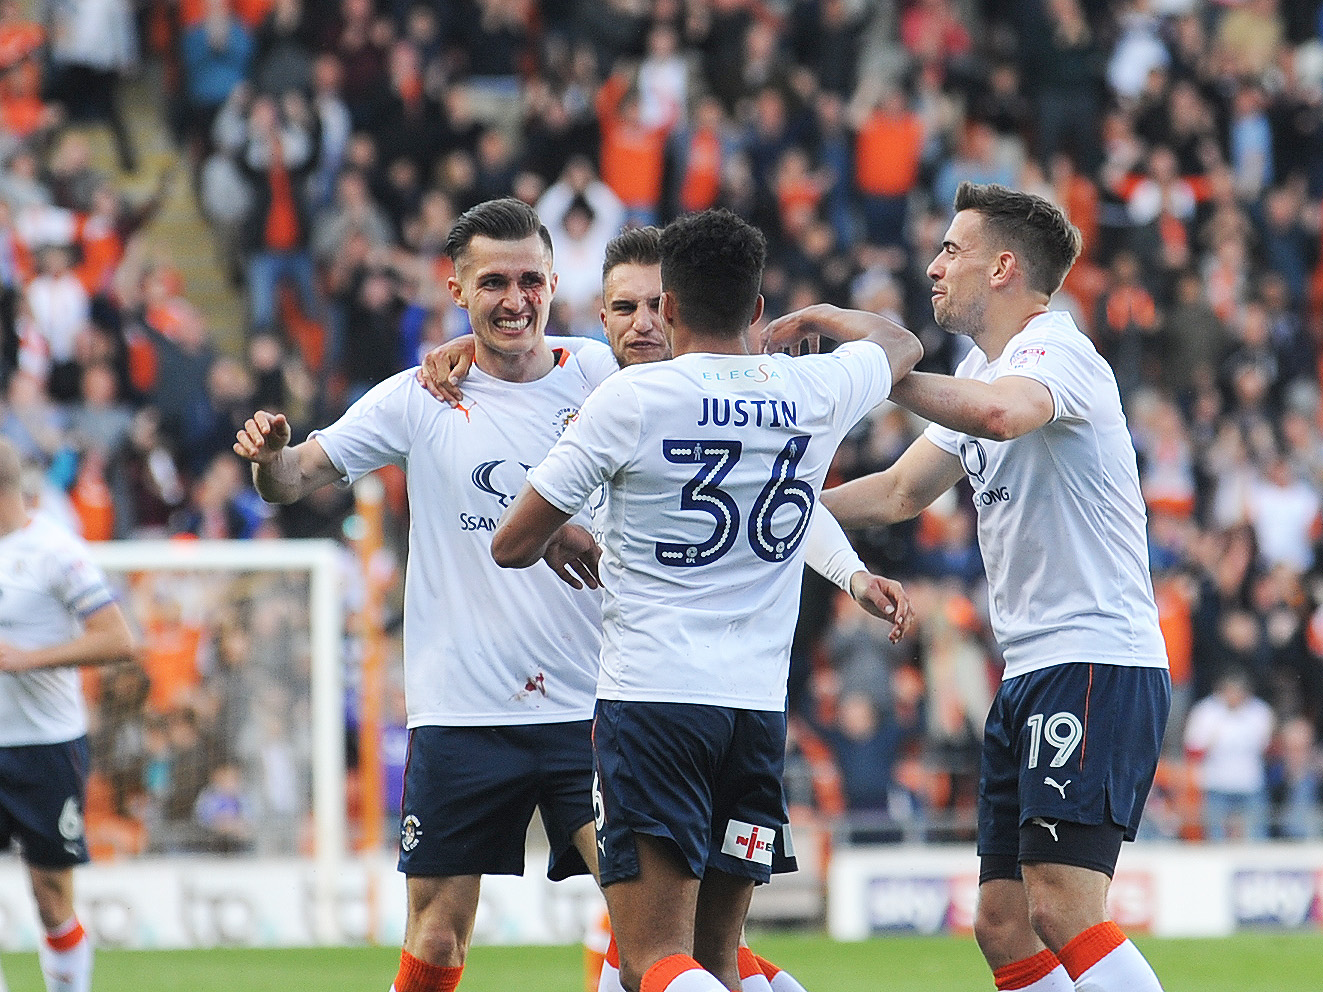 Dan Potts celebrates his first goal for the club in the play-off semi-final first leg at Blackpool